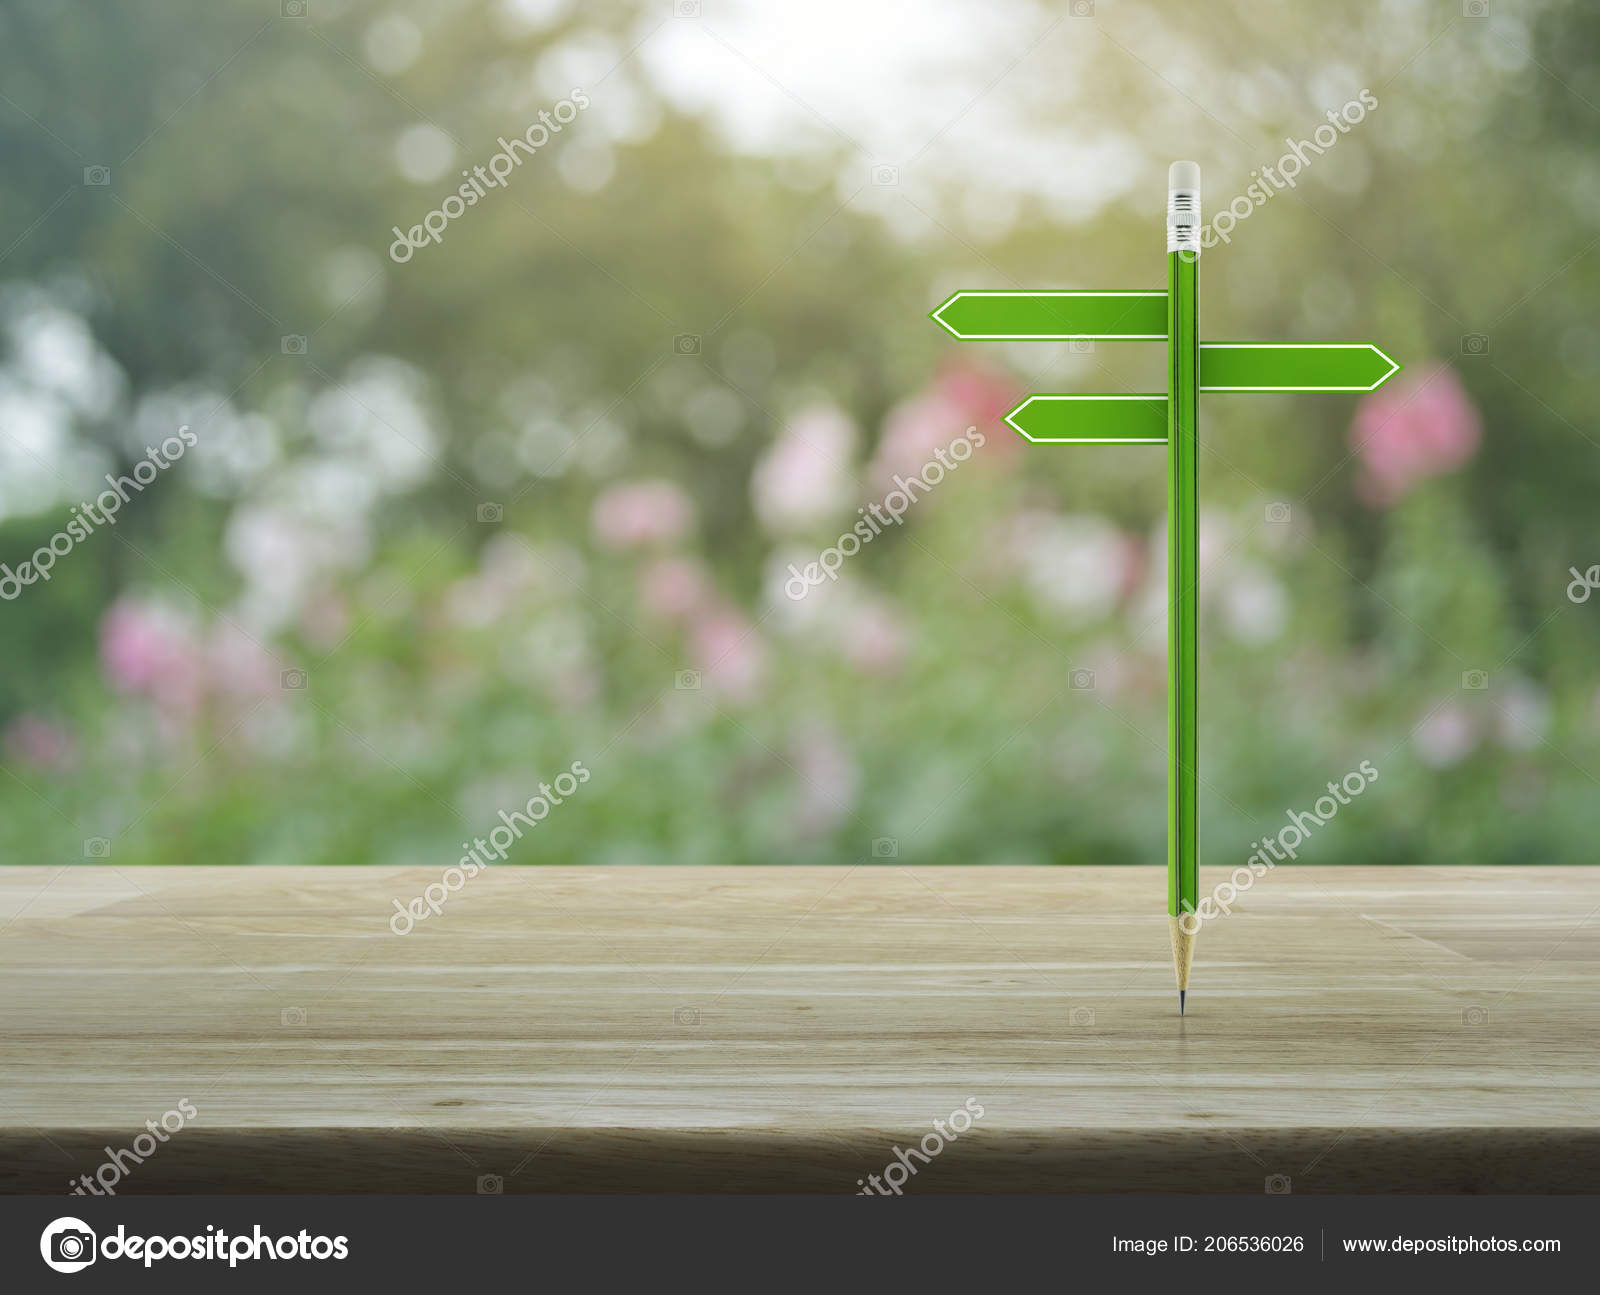 Pencil Blank Sign Plate Wooden Table Blur Pink Flower Tree Stock